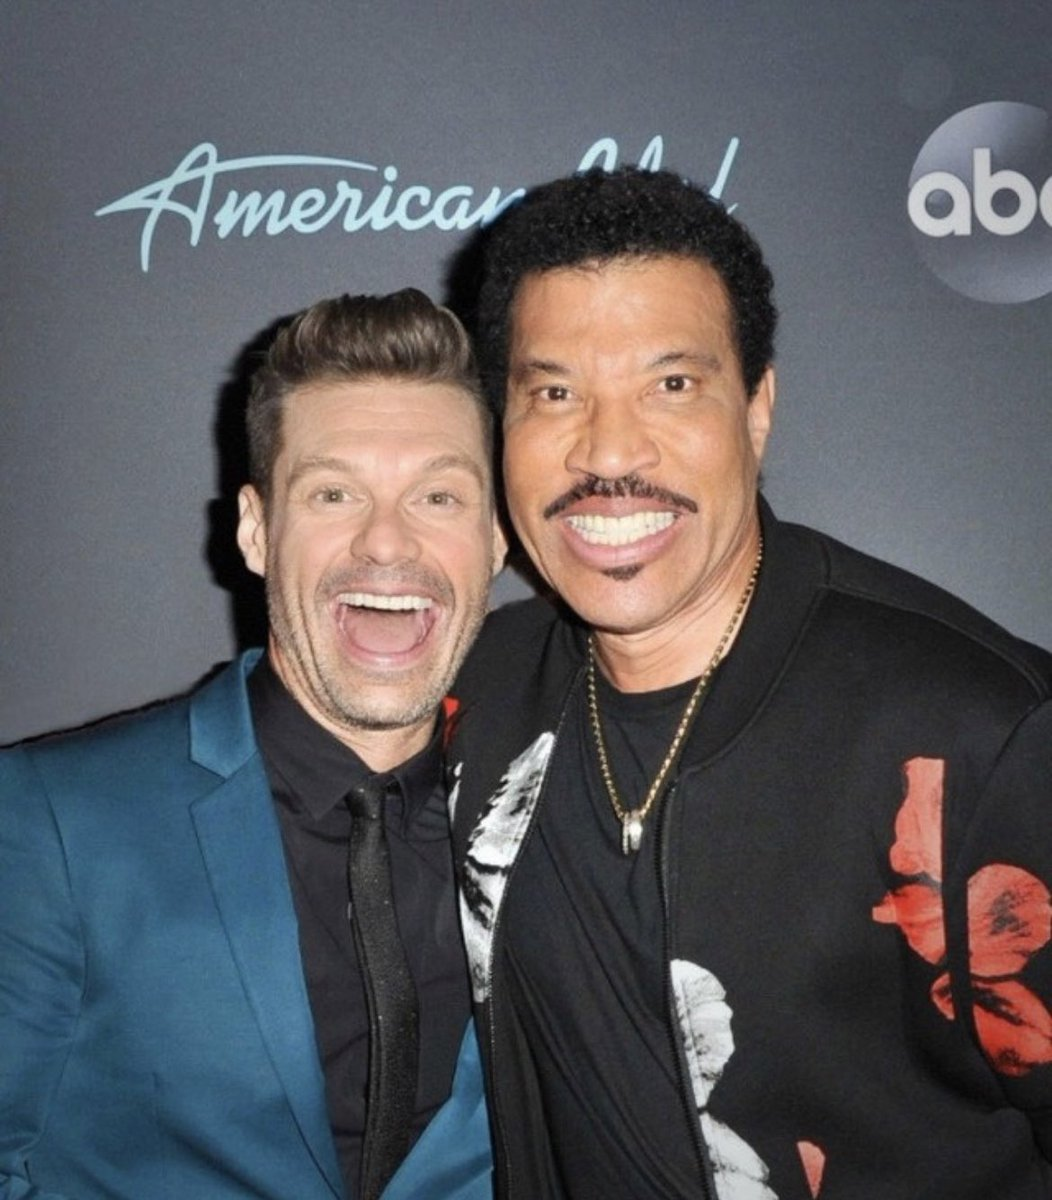 Happy birthday and Happy Father's Day, Papa Lionel! @LionelRichie https://t.co/Ol8FUw7ovt